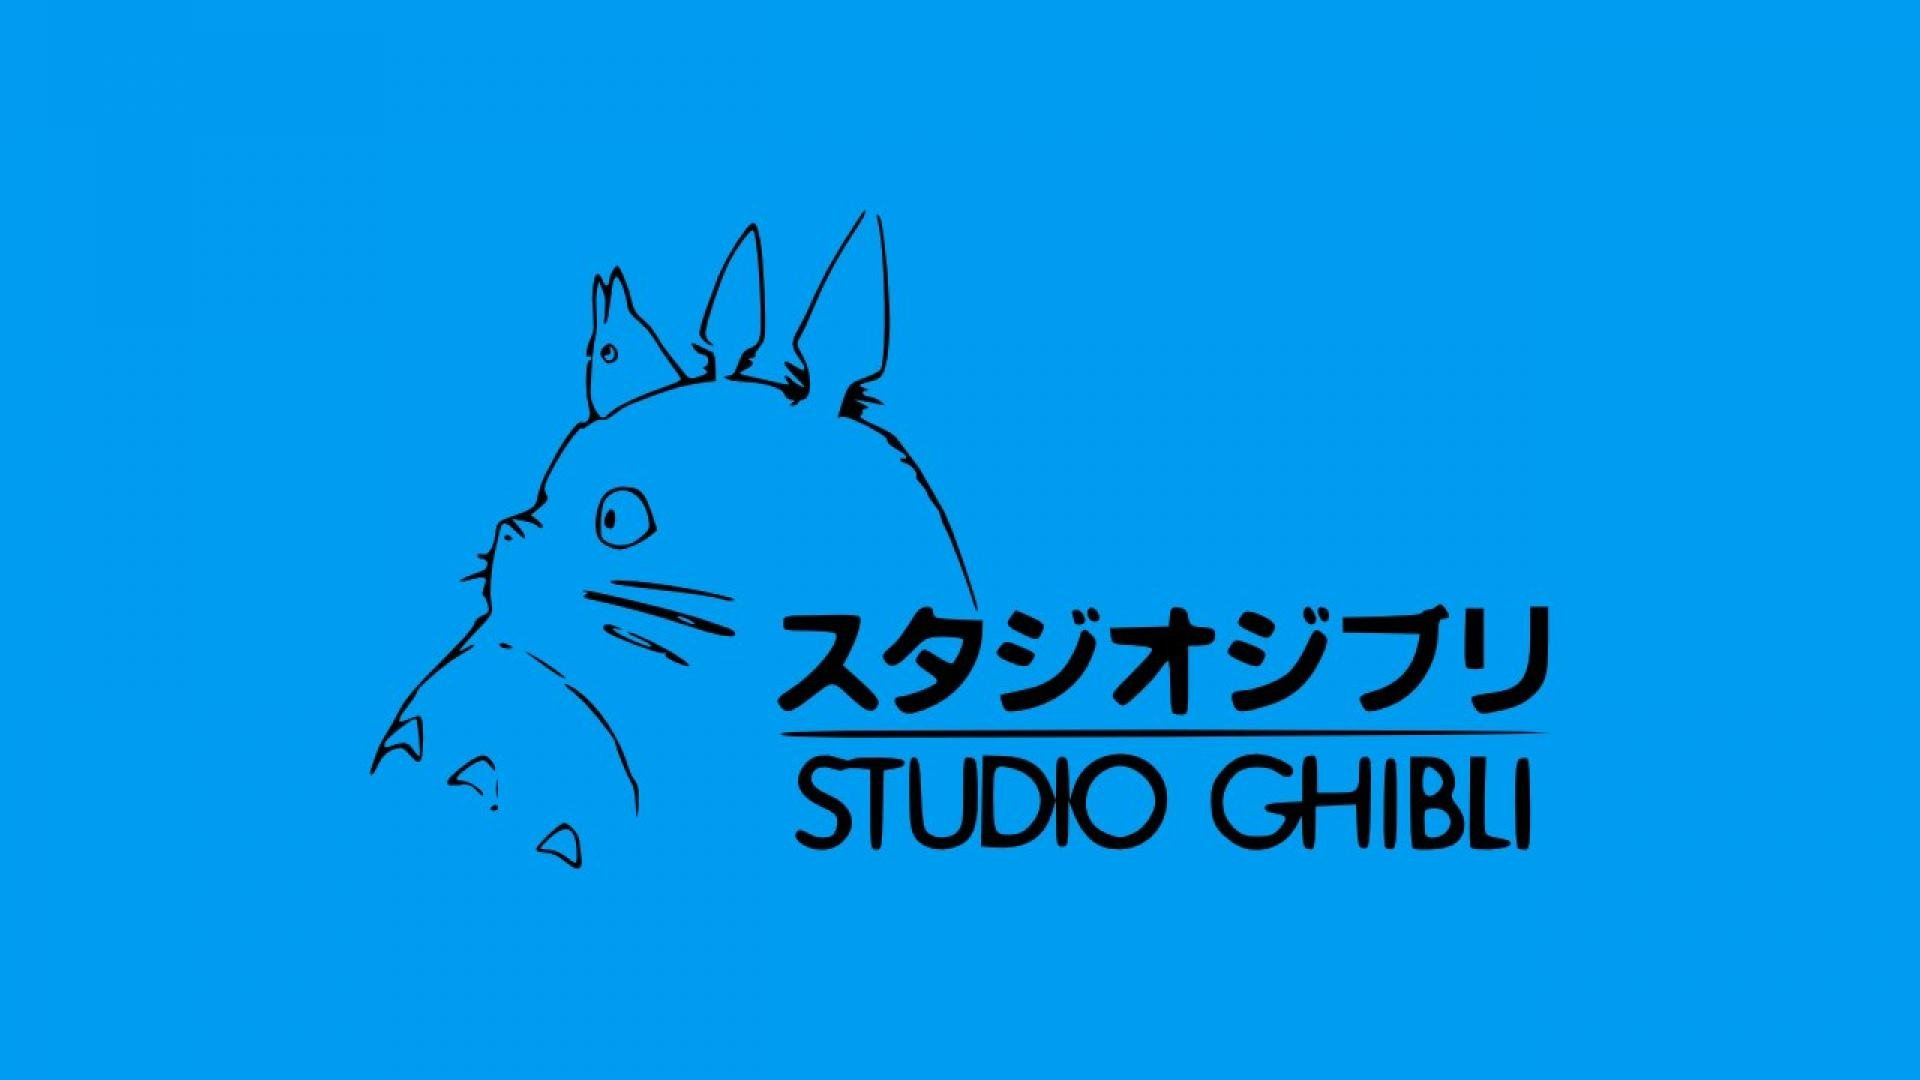 studio ghibli HD Wallpaper wallpaper   4628   HQ Desktop Wallpapers 1920x1080